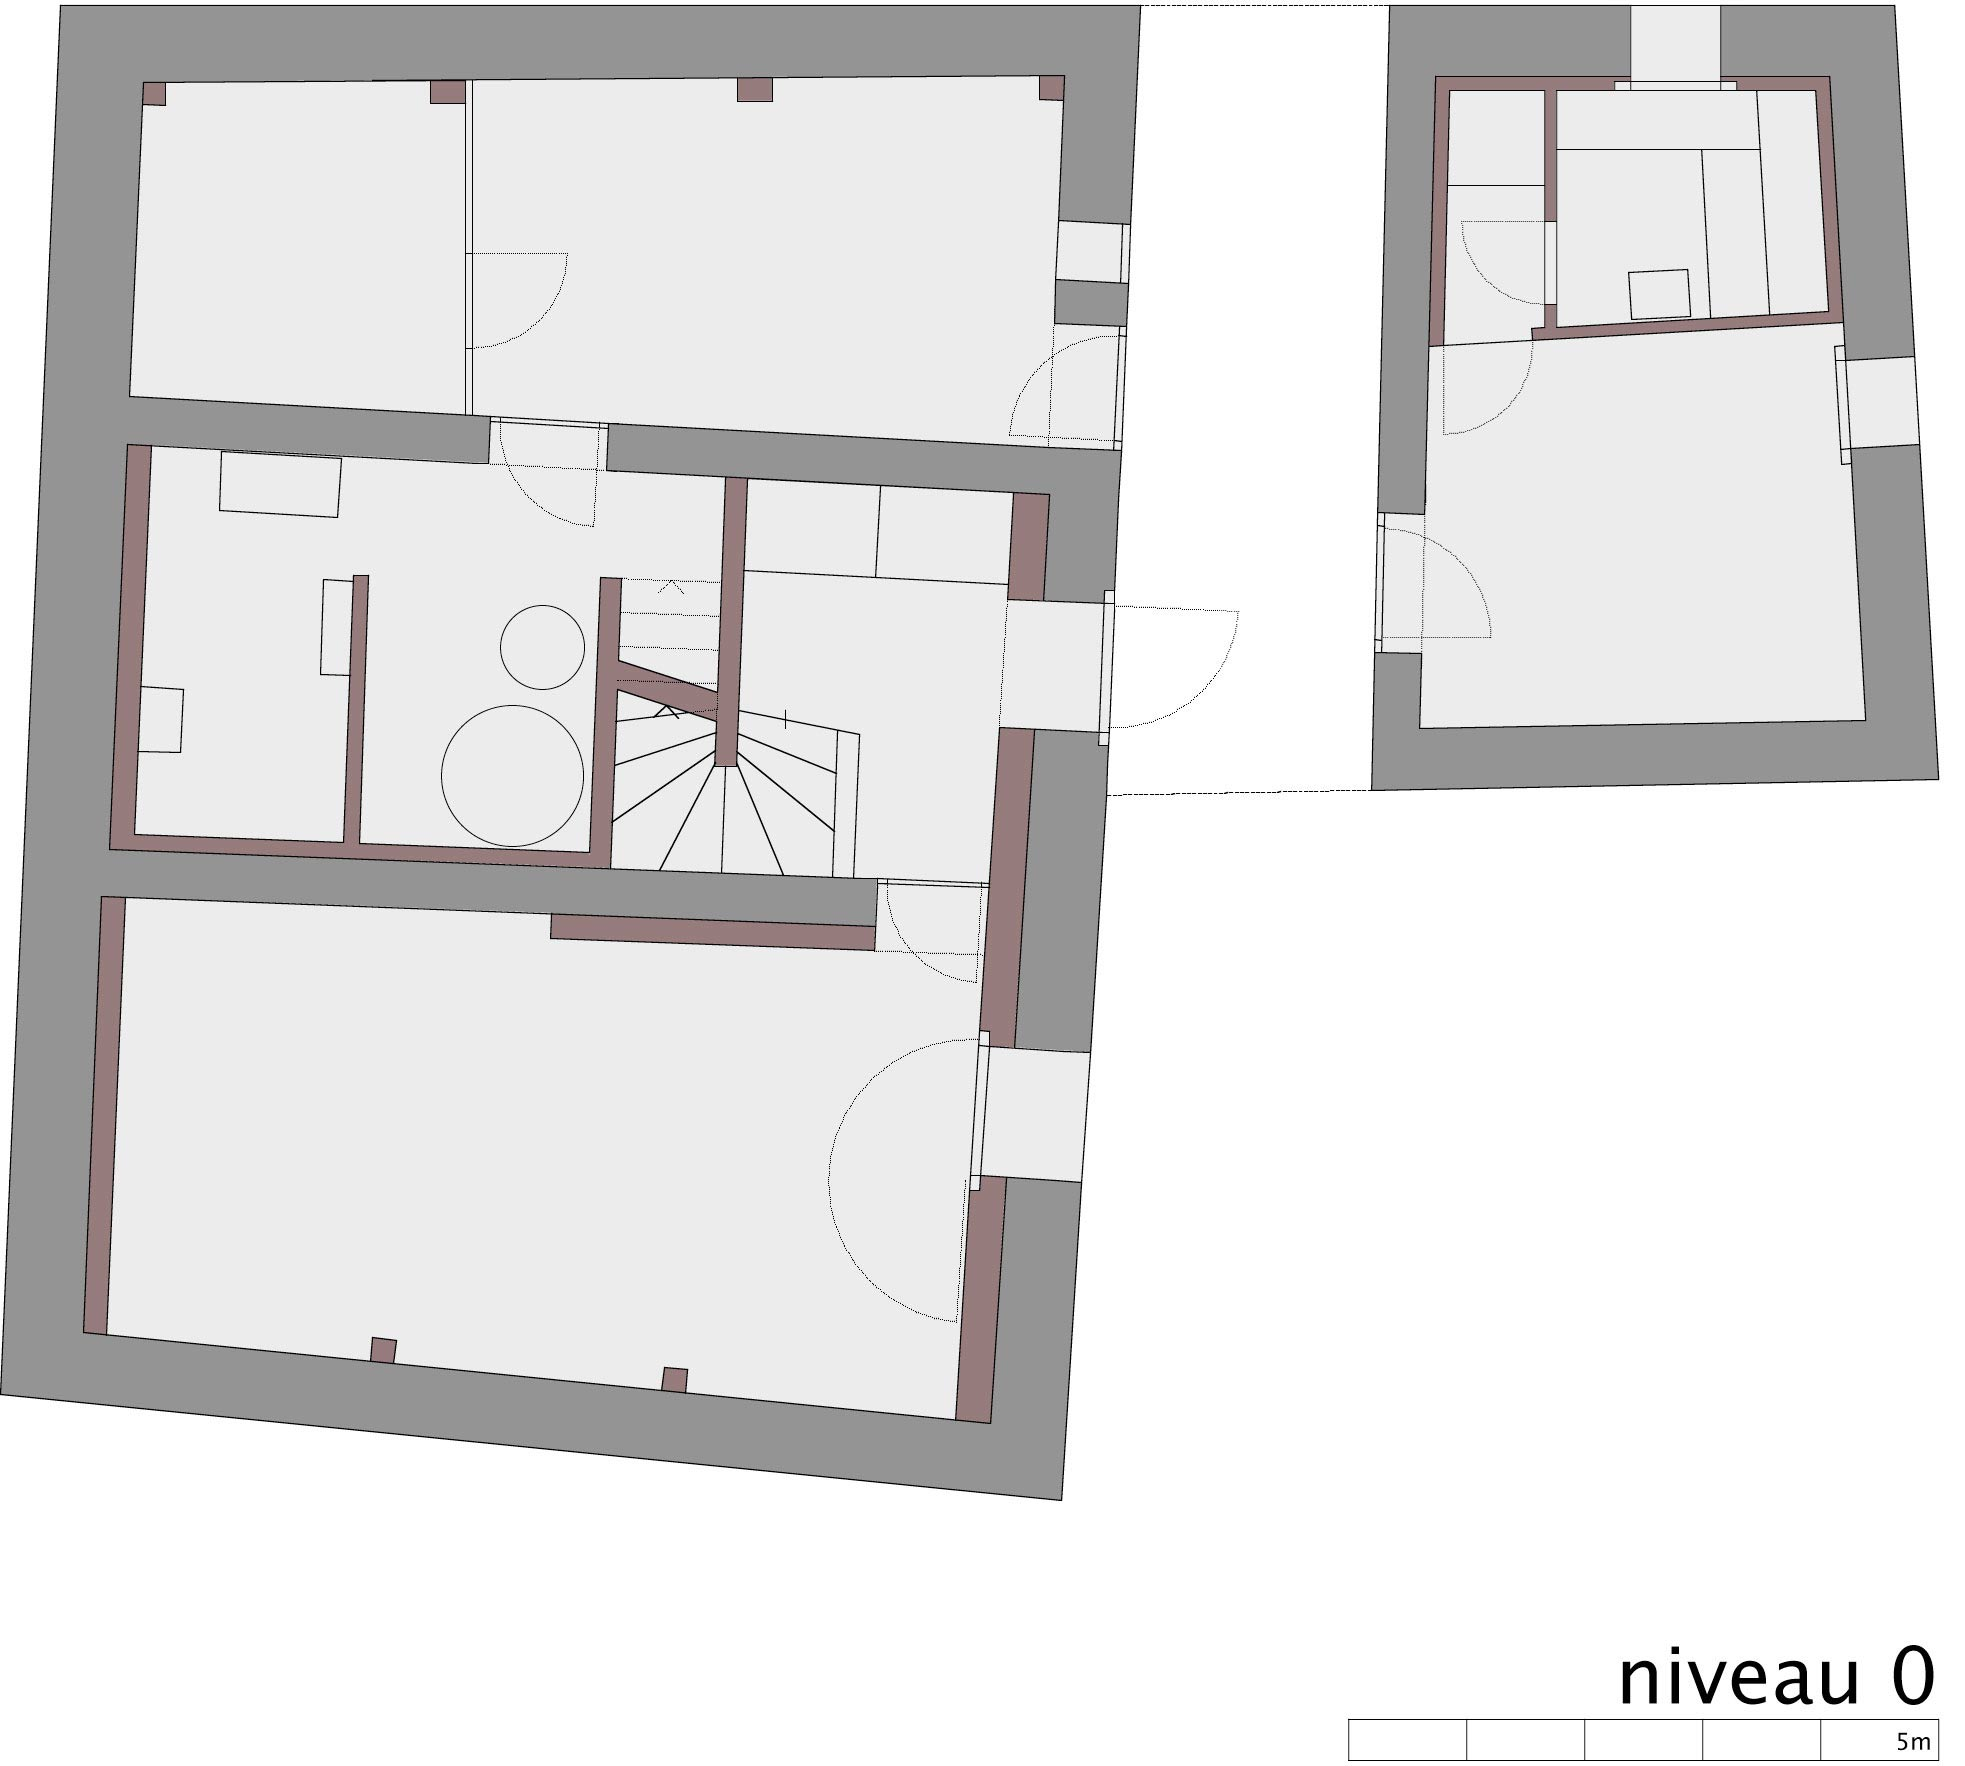 Ground Floor Plan, Renovation in Chamoson, Switzerland by Savioz Fabrizzi Architecte